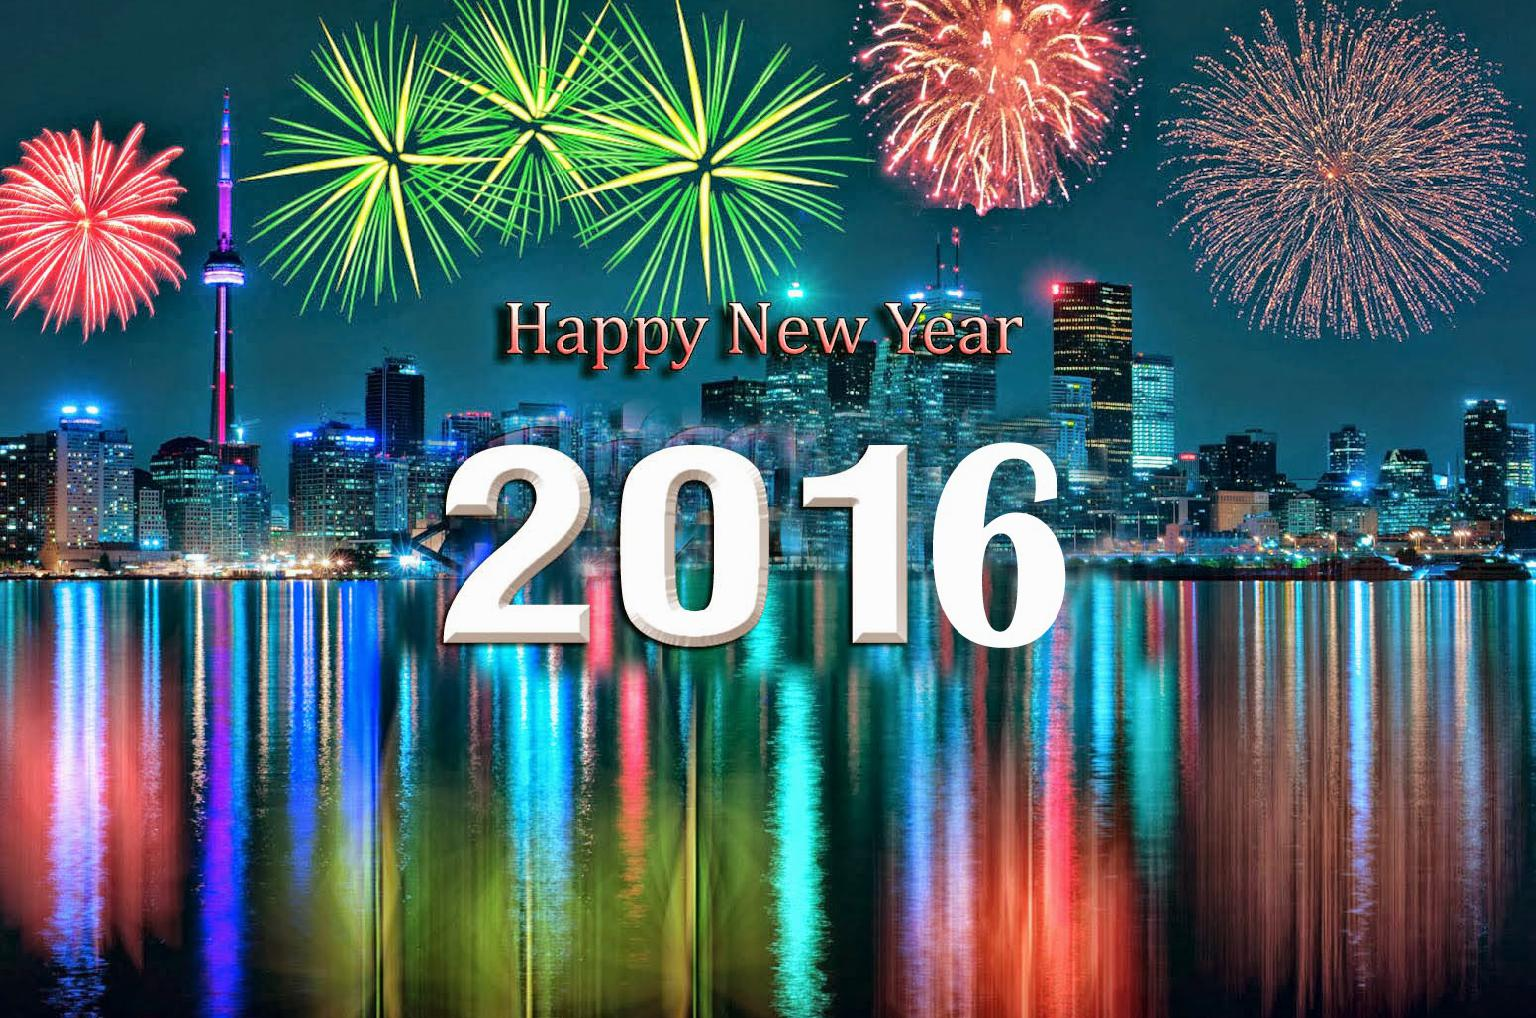 Best dp bbm gerak happy new year 2016 image collection gambar dp bbm happy new year 2016 m4hsunfo